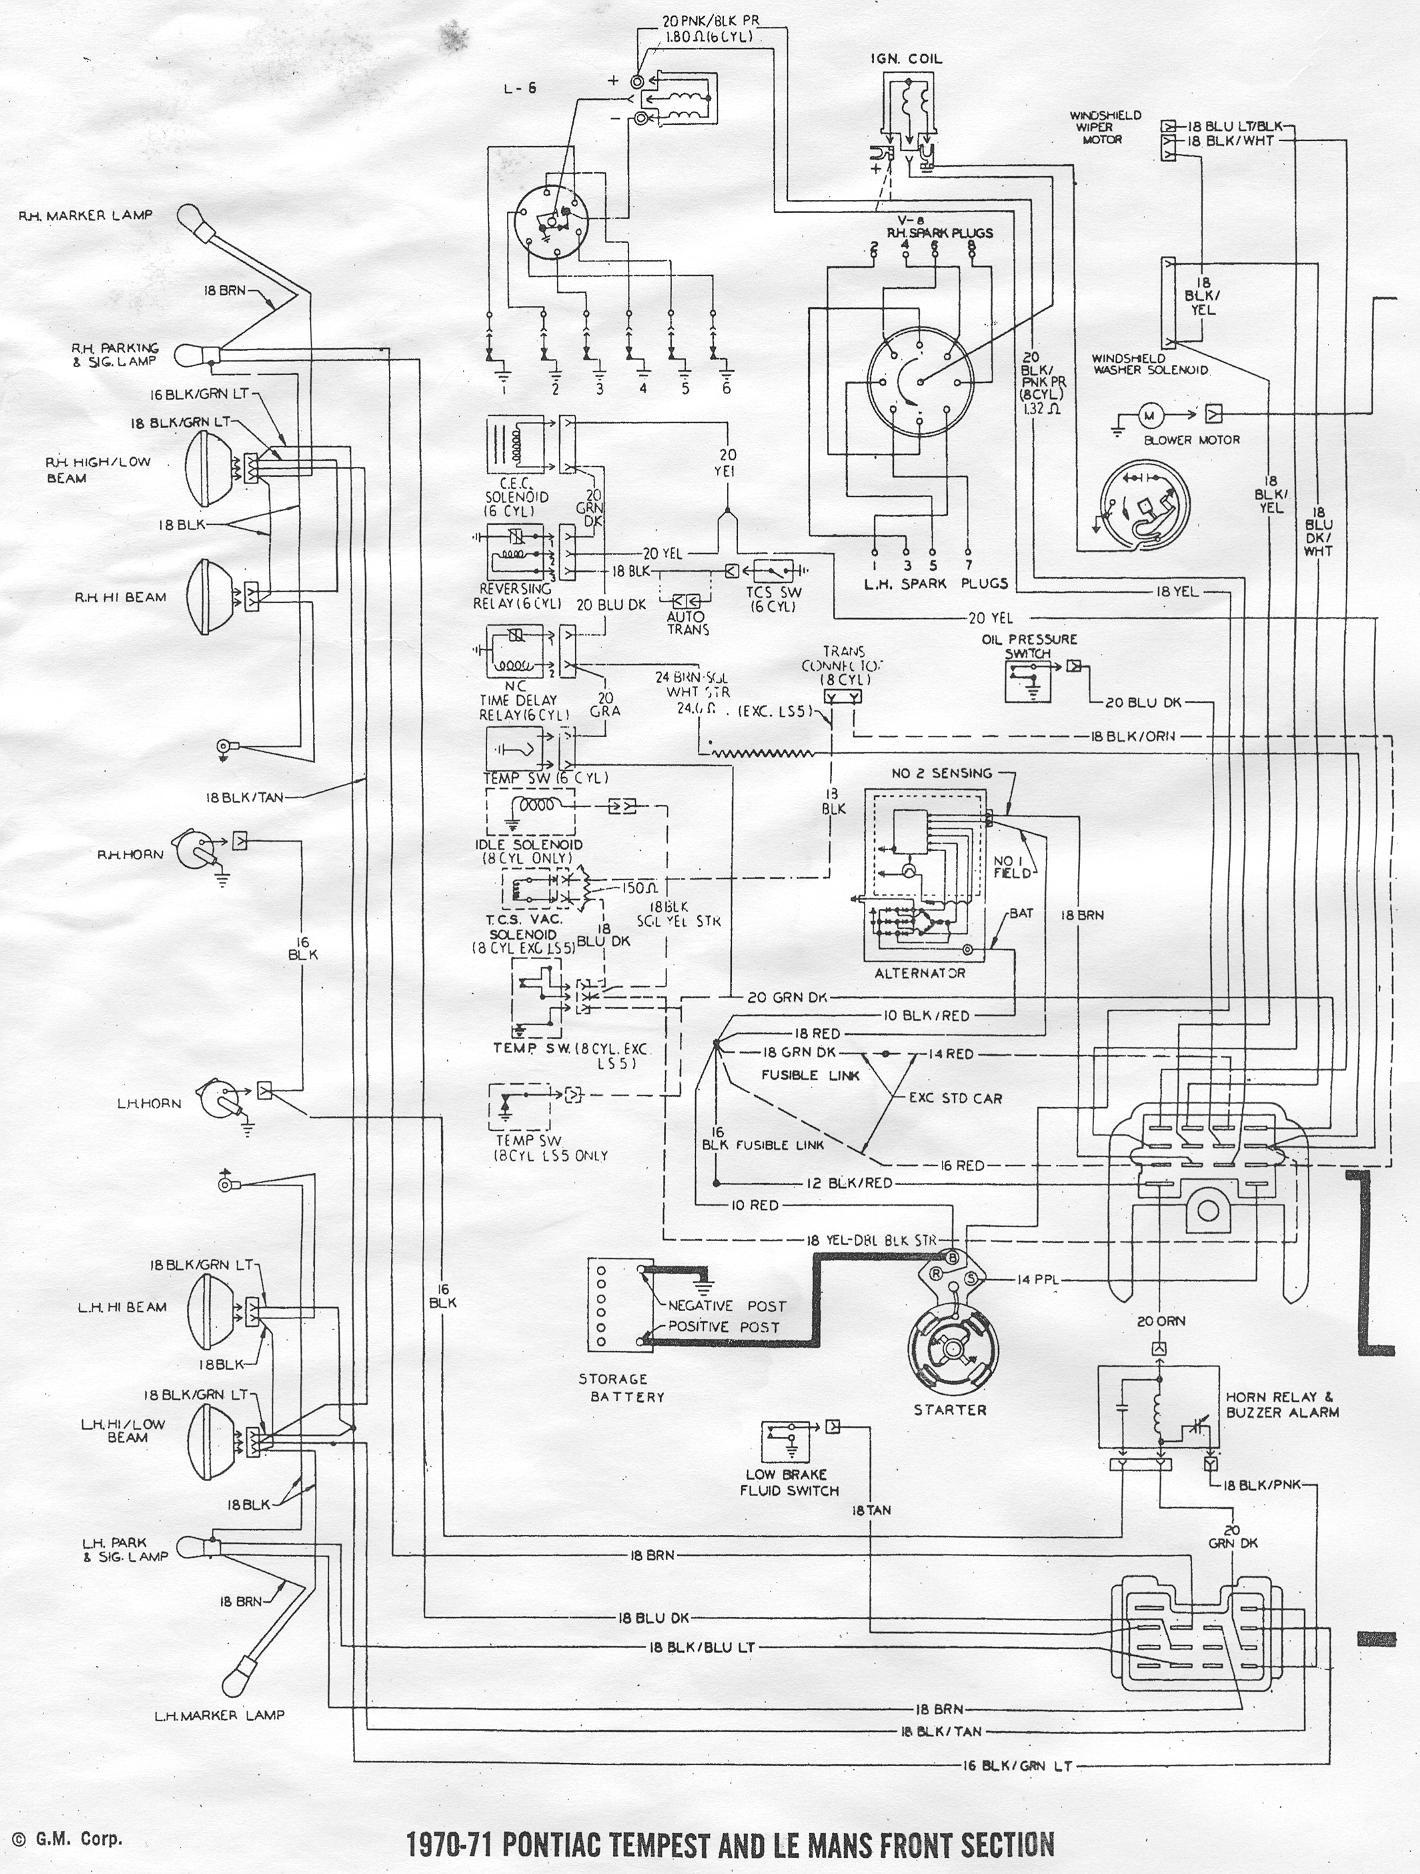 1965 chevelle wiring schematic wiring diagrams and schematics all generation wiring schematics chevy nova forum